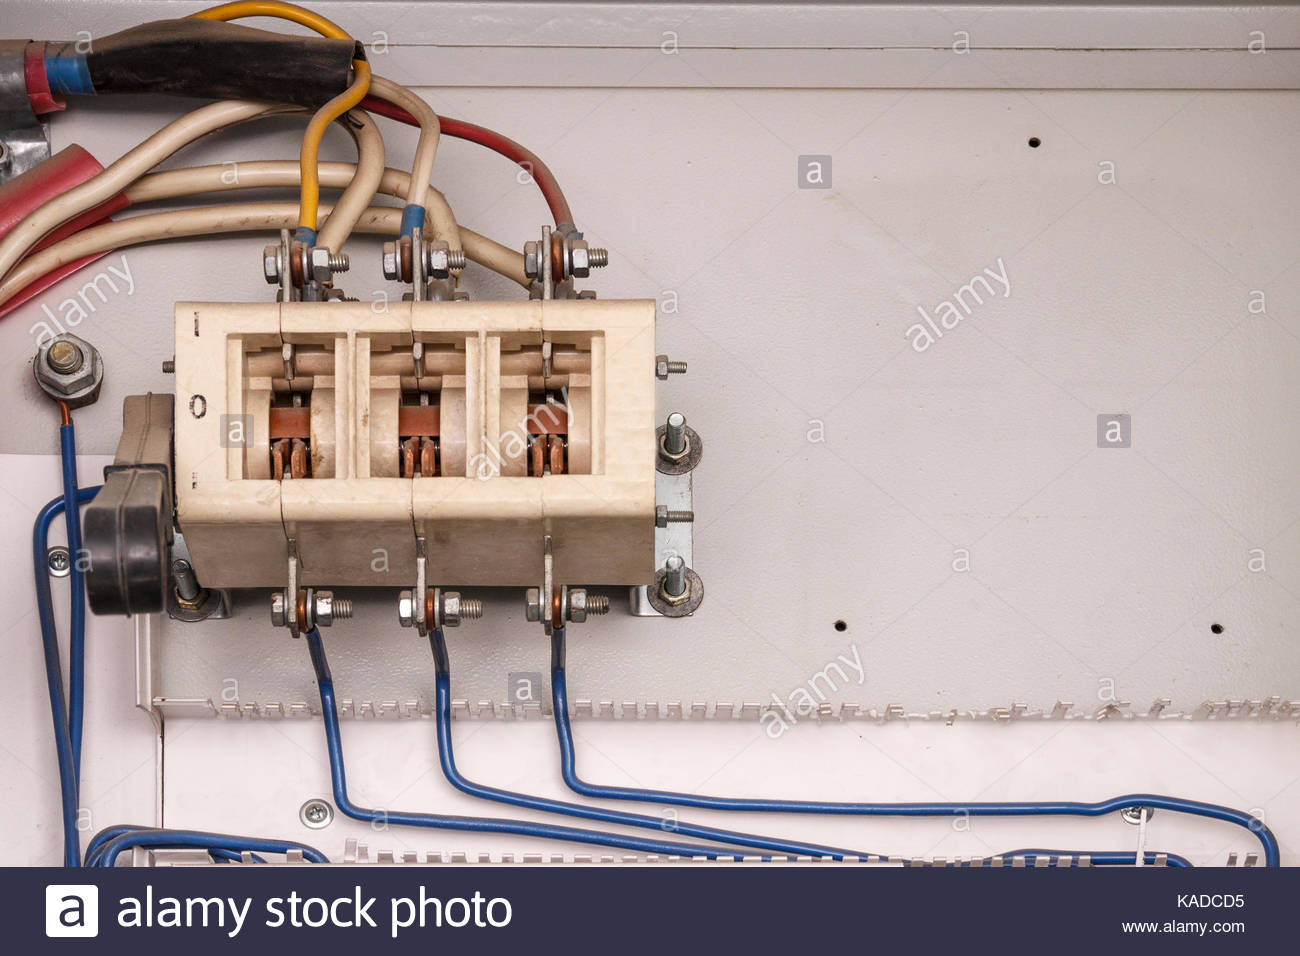 Circuit Breakers Stock Photos Images Alamy Electrical Control Panel With For Electric Motor During Mantenance Image